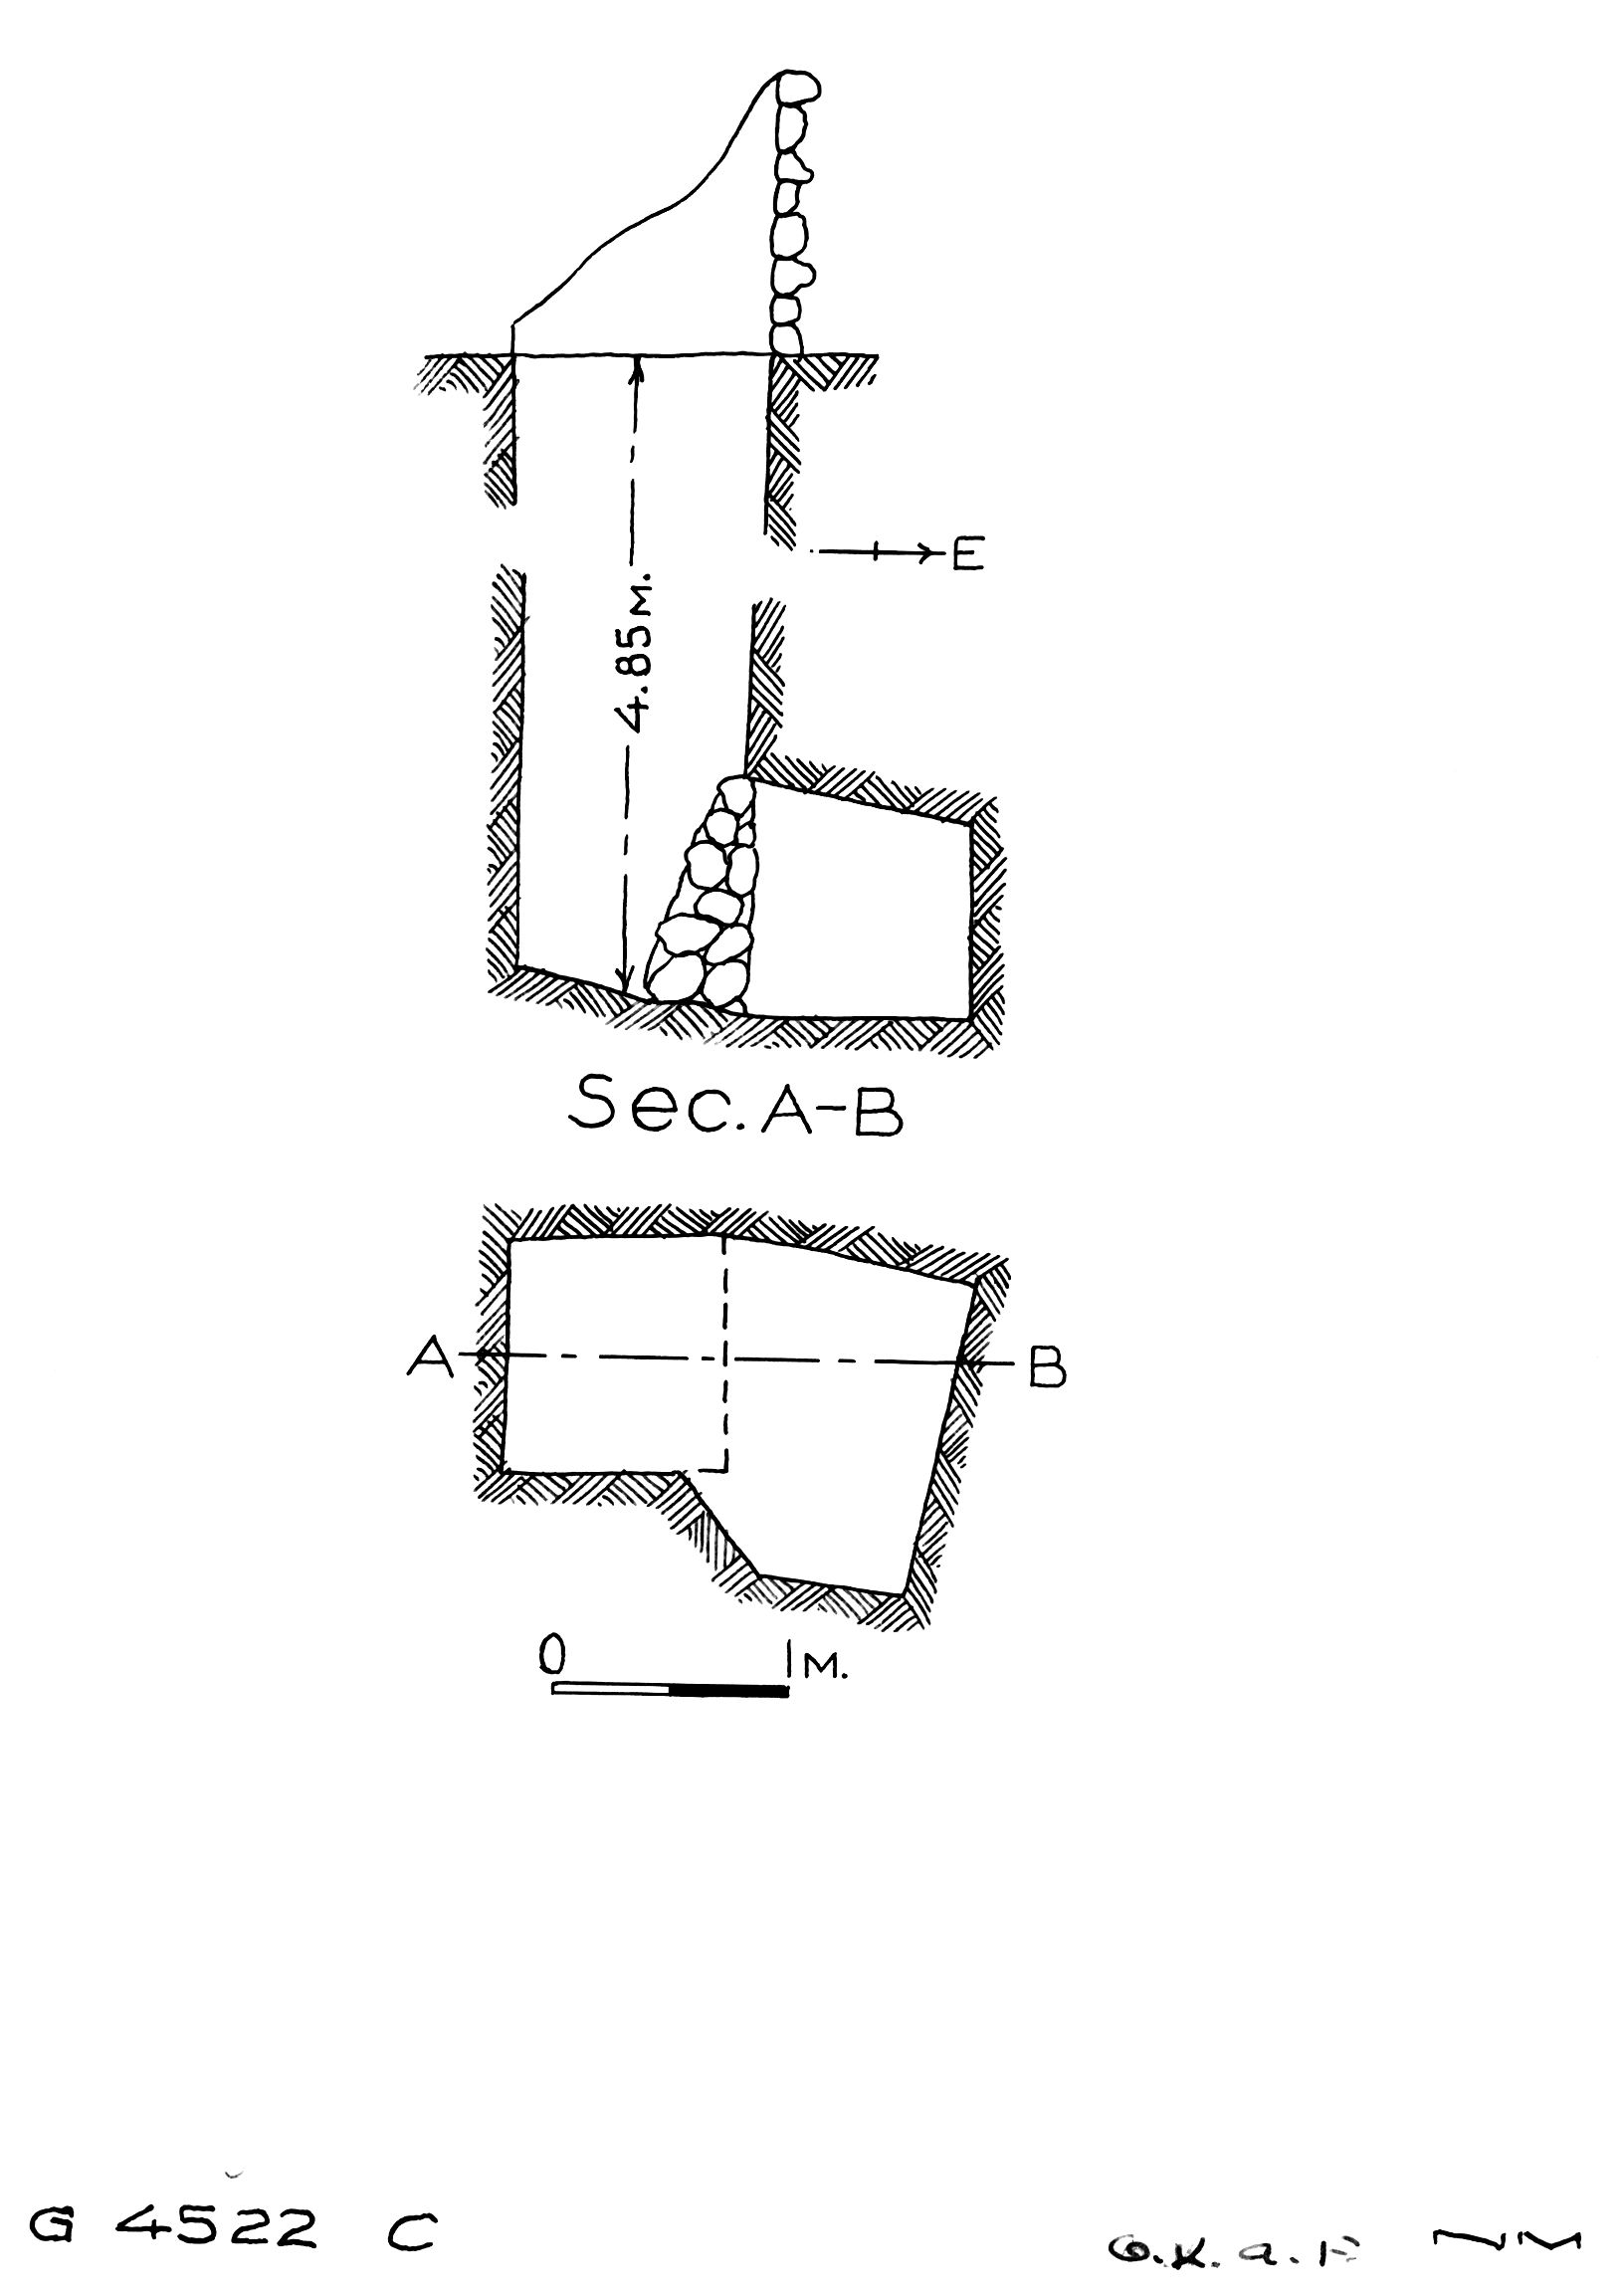 Maps and plans: G 4522, Shaft C